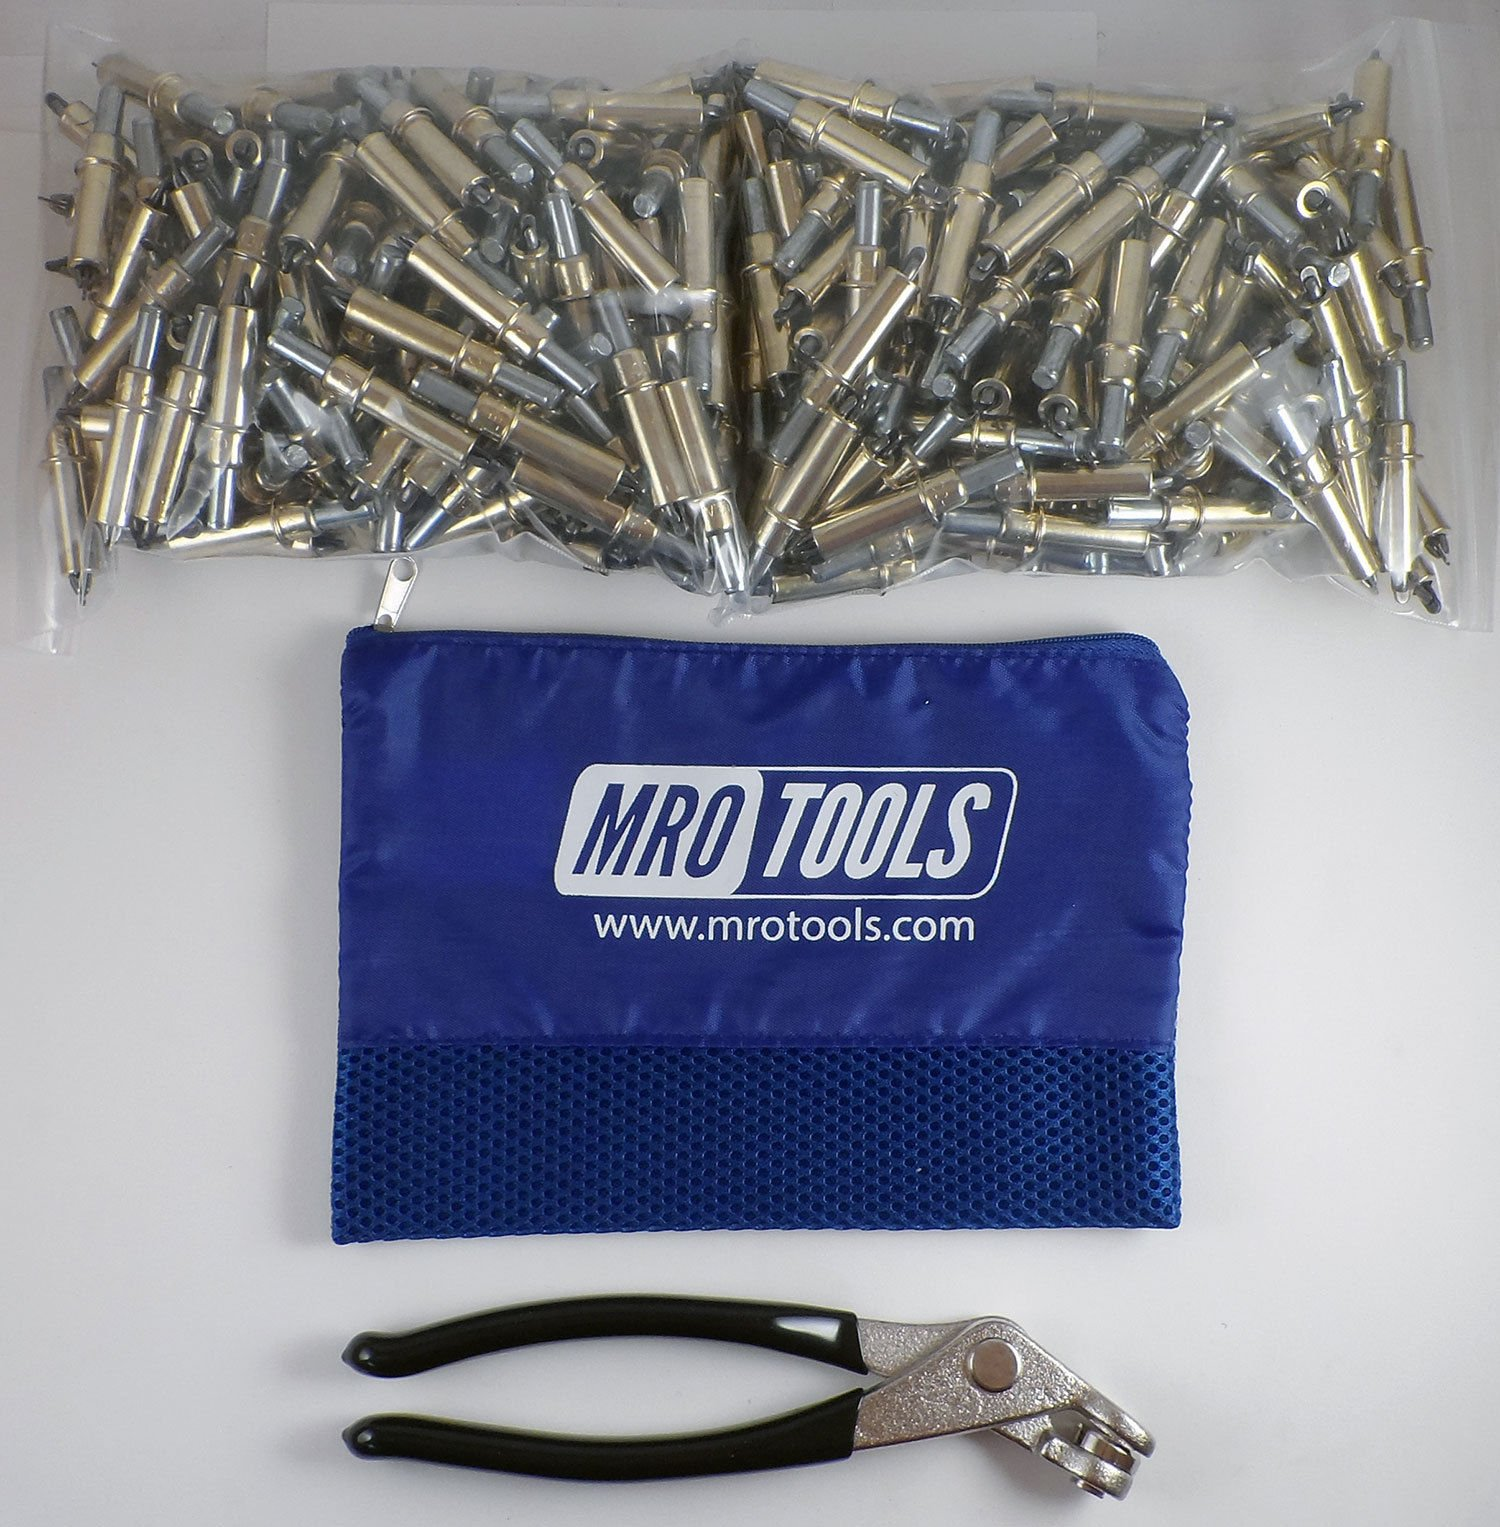 450 3/16 Cleco Sheet Metal Fasteners + Cleco Pliers w/Carry Bag (K1S450-3/16) by MRO Tools Cleco Fasteners